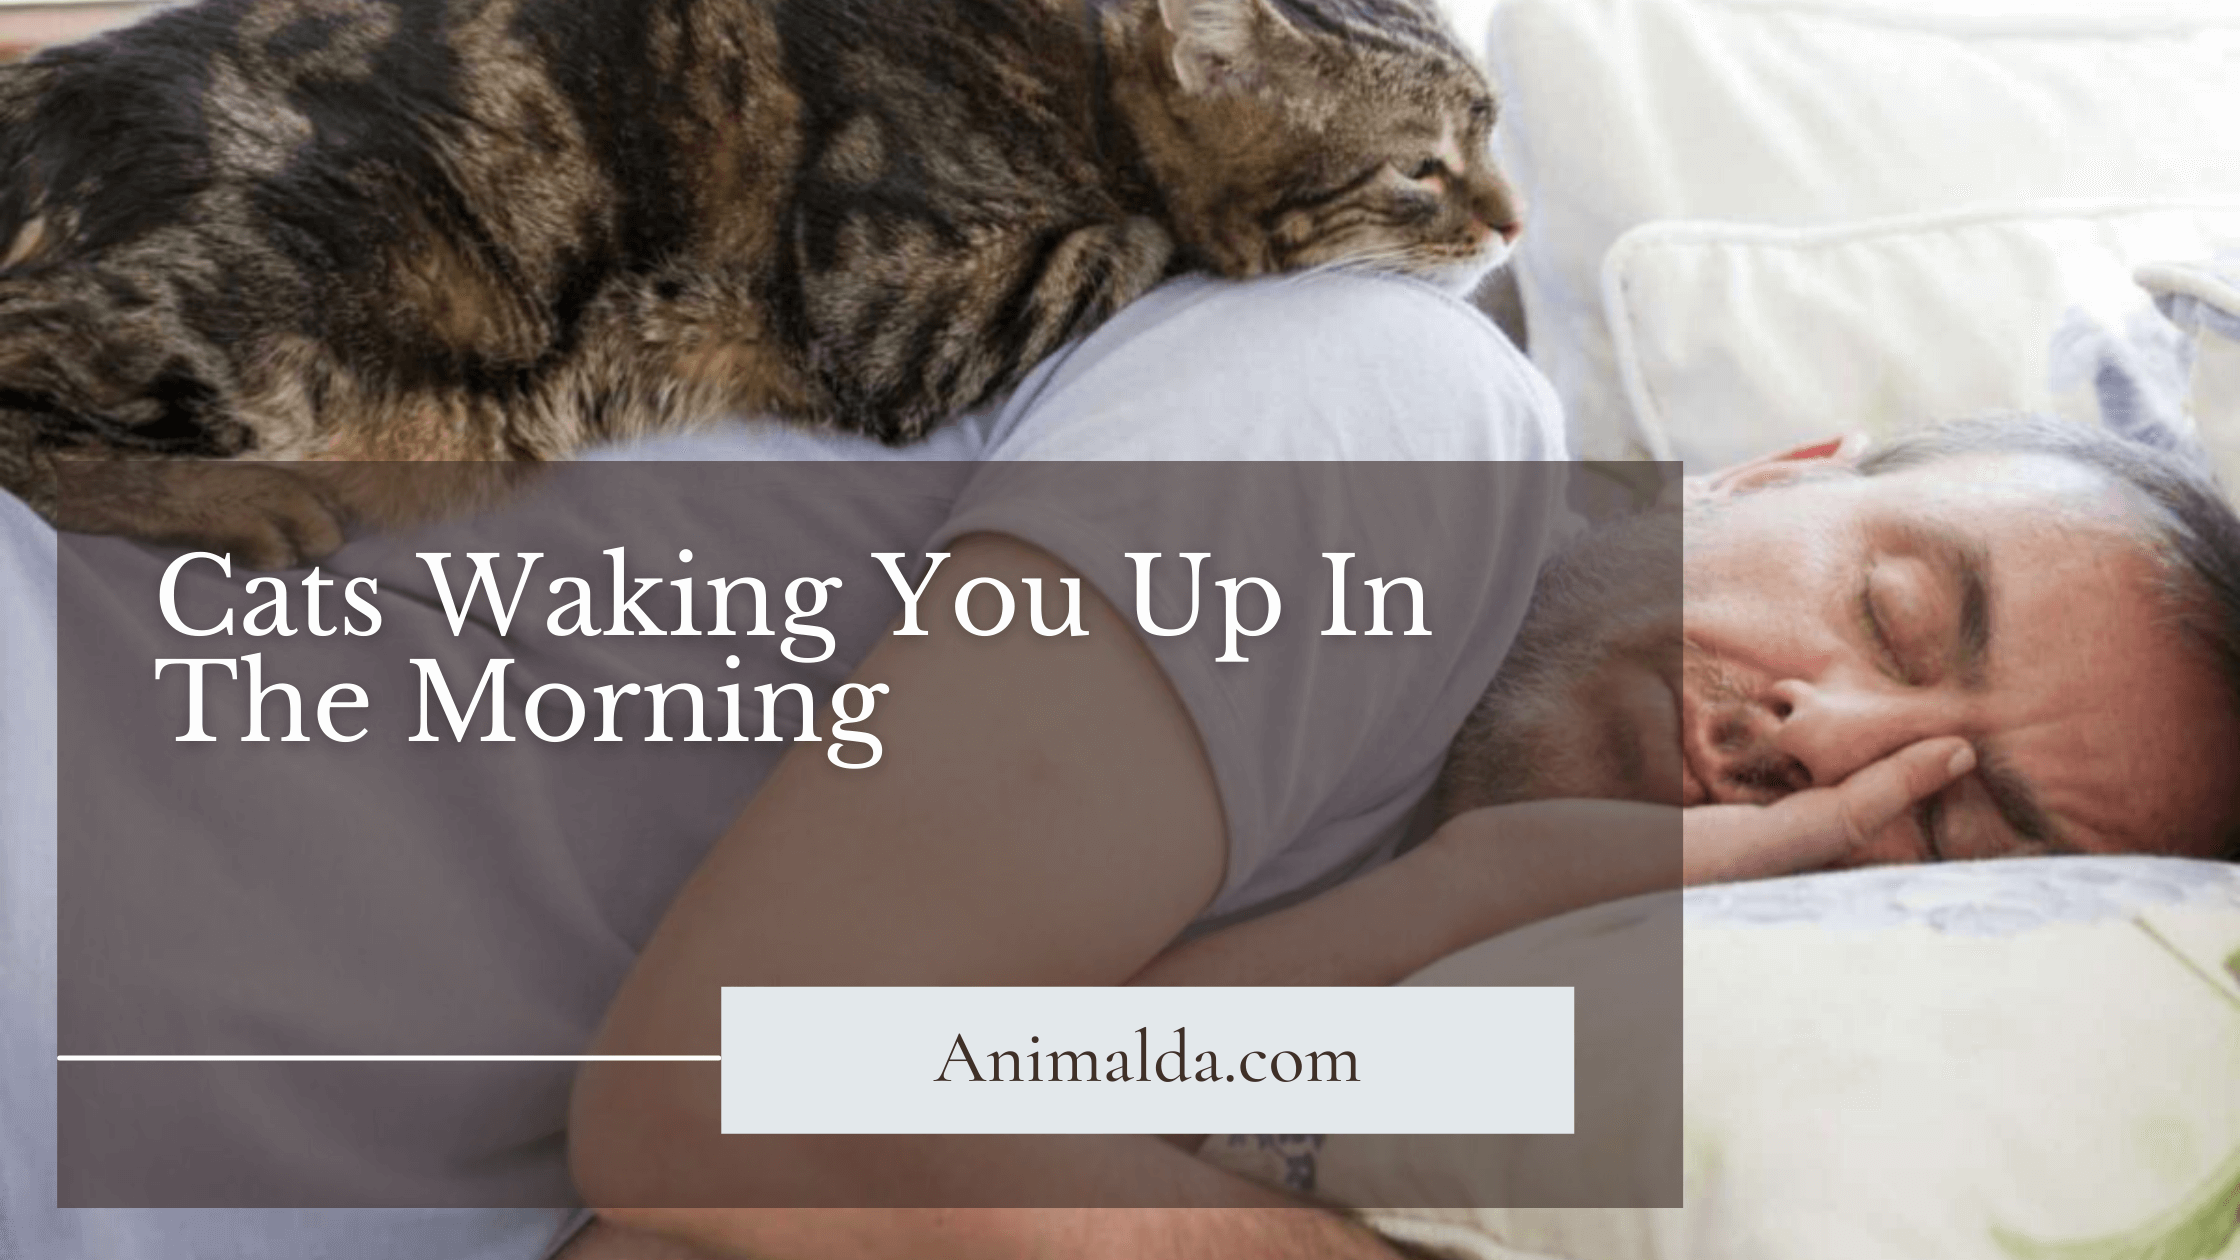 Cats_Waking_You_Up_In_The_Morning